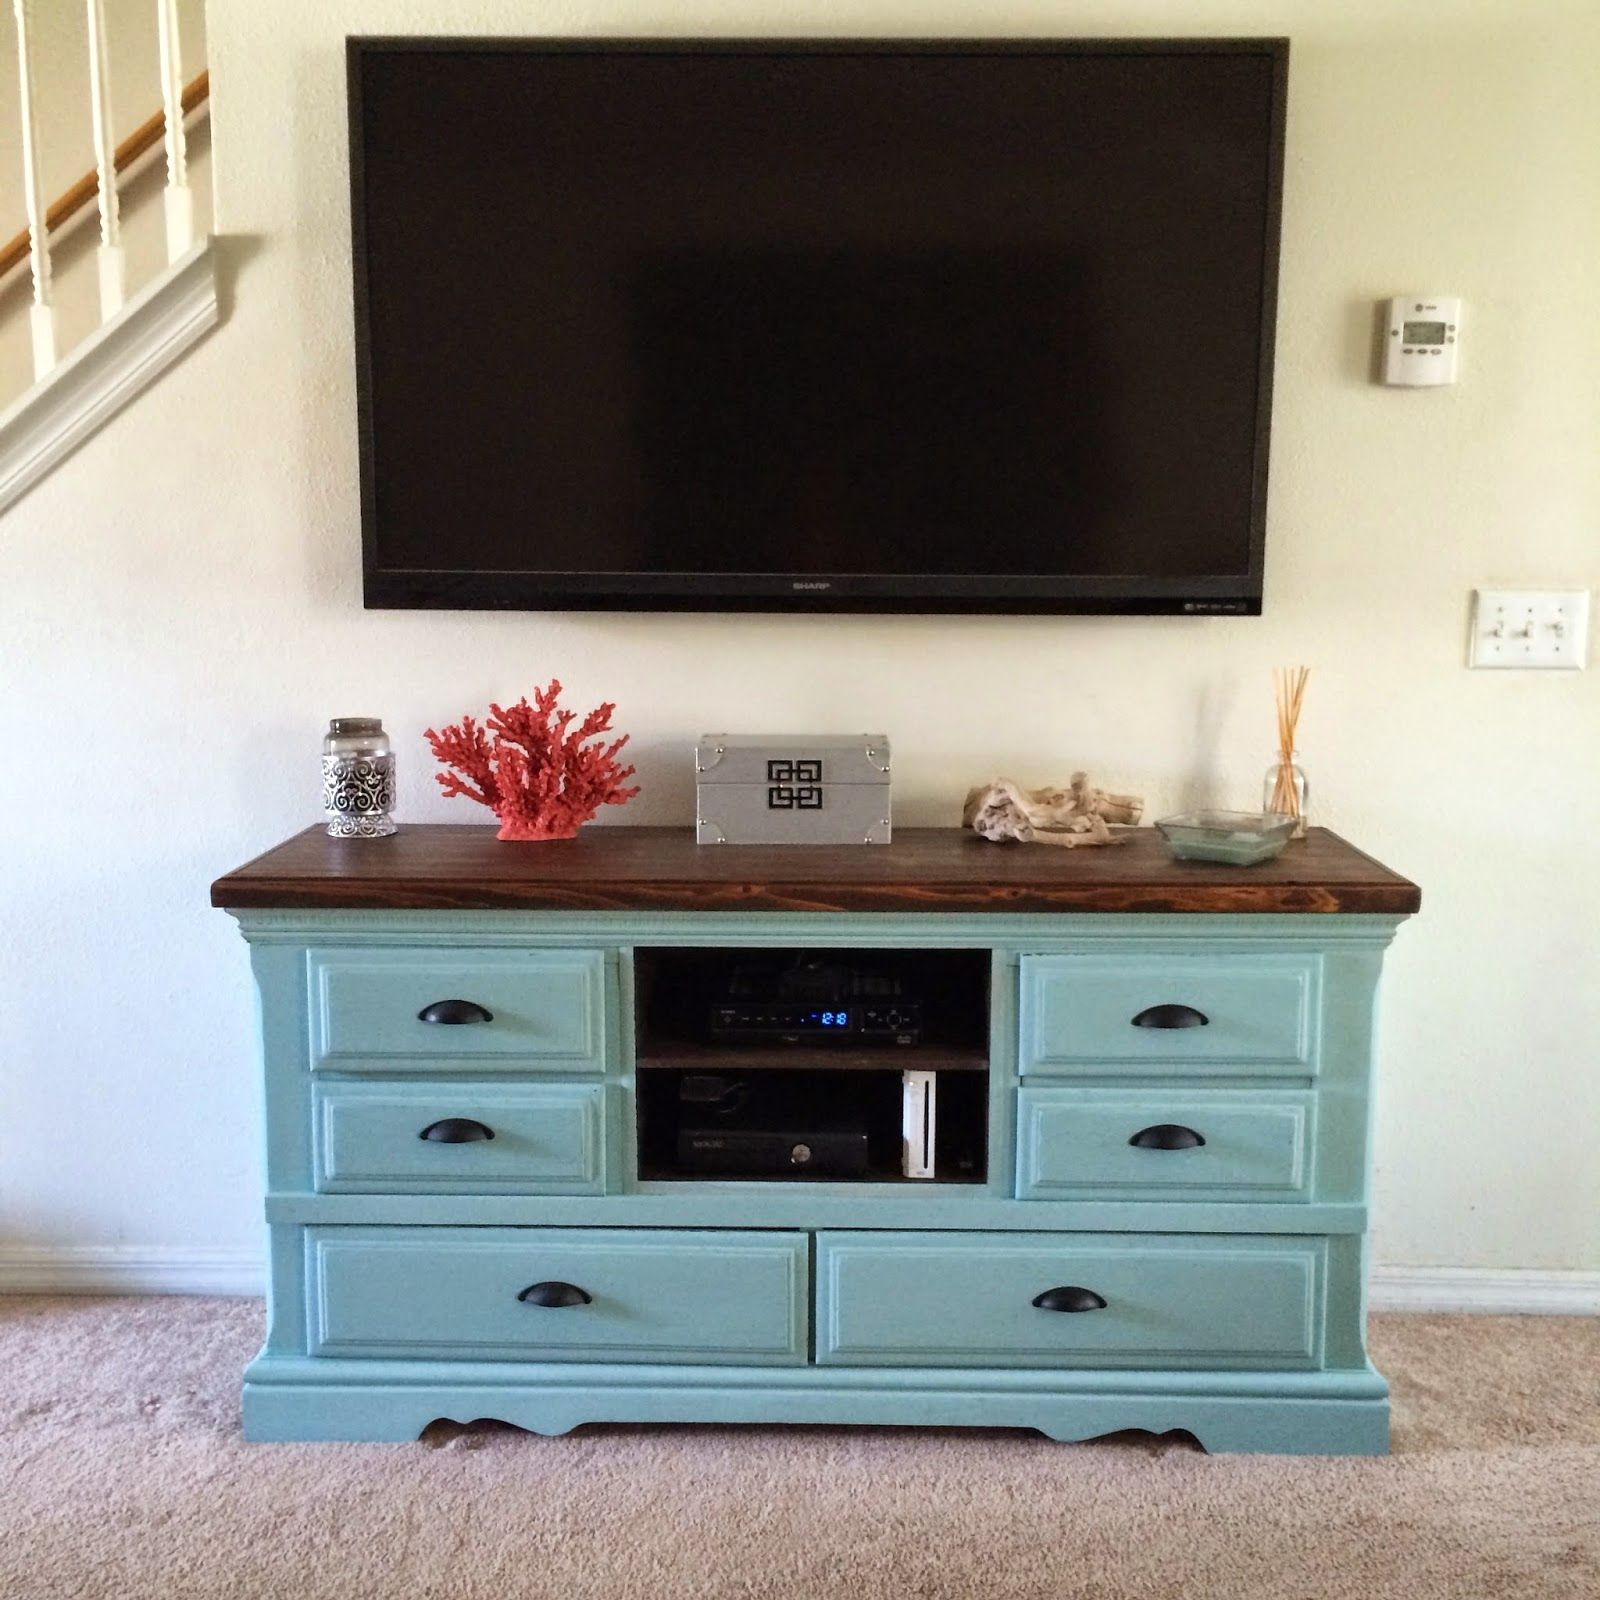 repurposed old dresser into a entertainment center  pallet tv  - cult nails blog furniture diy  from trash found dresser to treasured entertainmentcenter